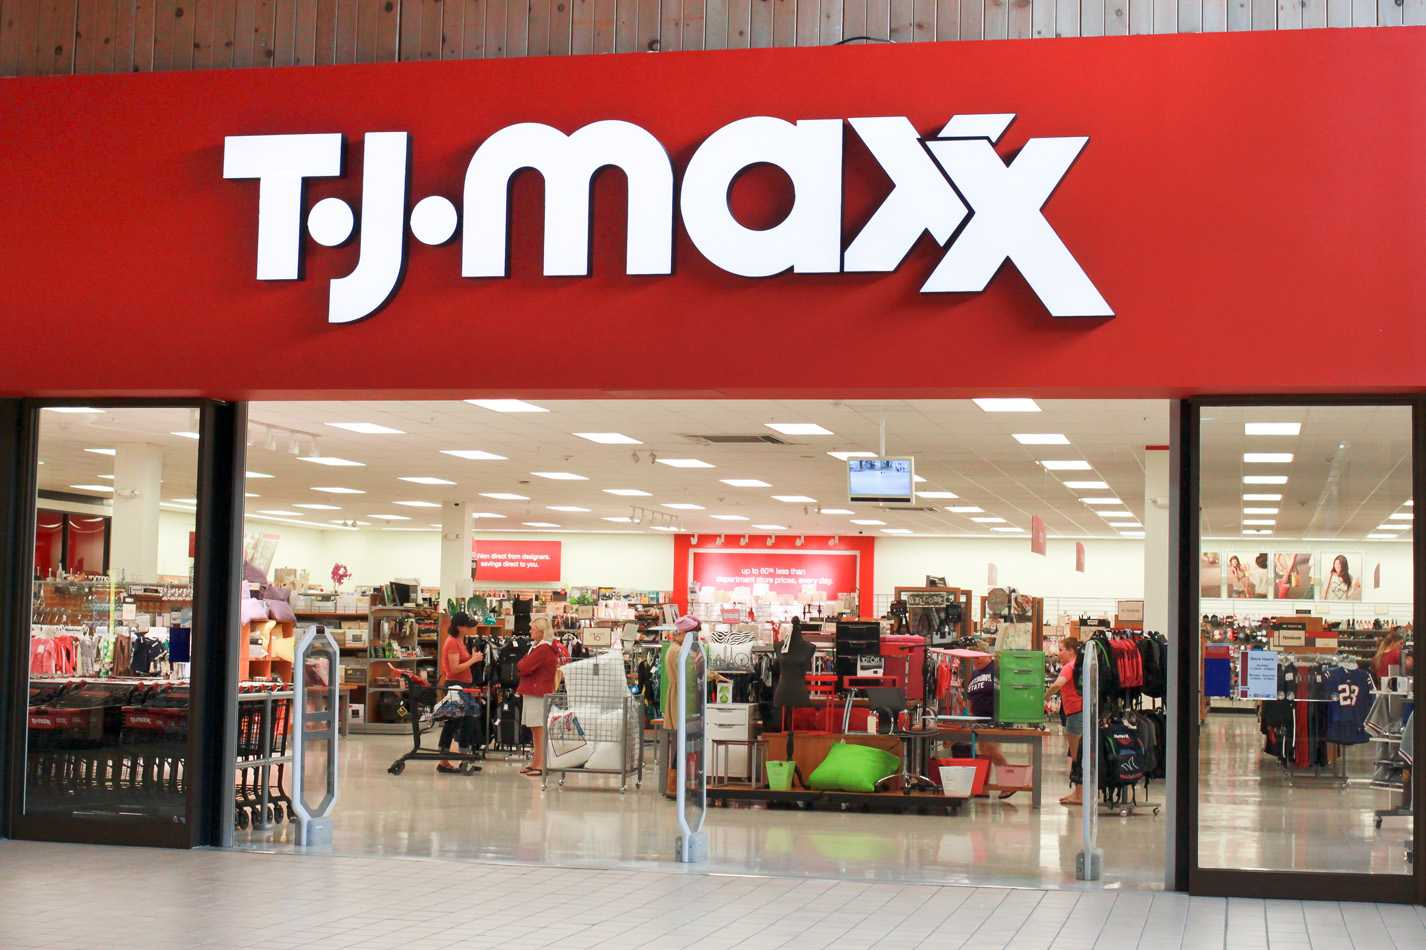 Here I am going to include all about tj maxx store hours and tj maxx store hours during holidays. If you want to know everything about tj maxx store hours opening and closing time or tj maxx store hours on weekend or tj maxx store hours on Sunday or Saturday then look at this weatherlyp.gqd: ; 41 years ago, Framingham, Massachusetts, U.S.